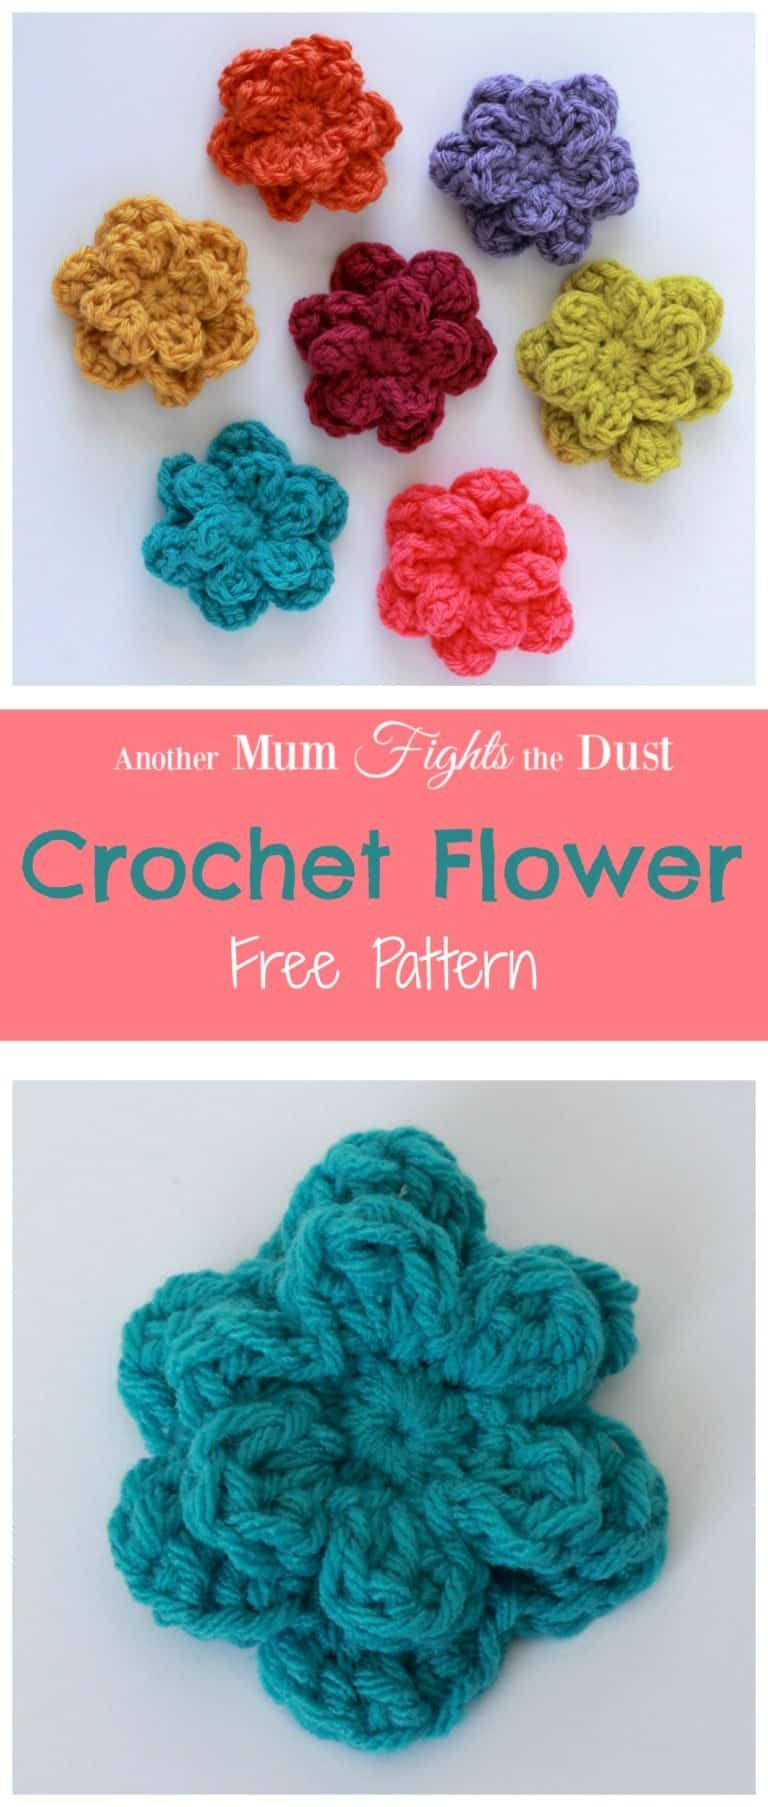 Free crochet flower pattern perfect for  summer project use these appliques go add to any of your projects splash colour also party stuff pinterest flowers rh